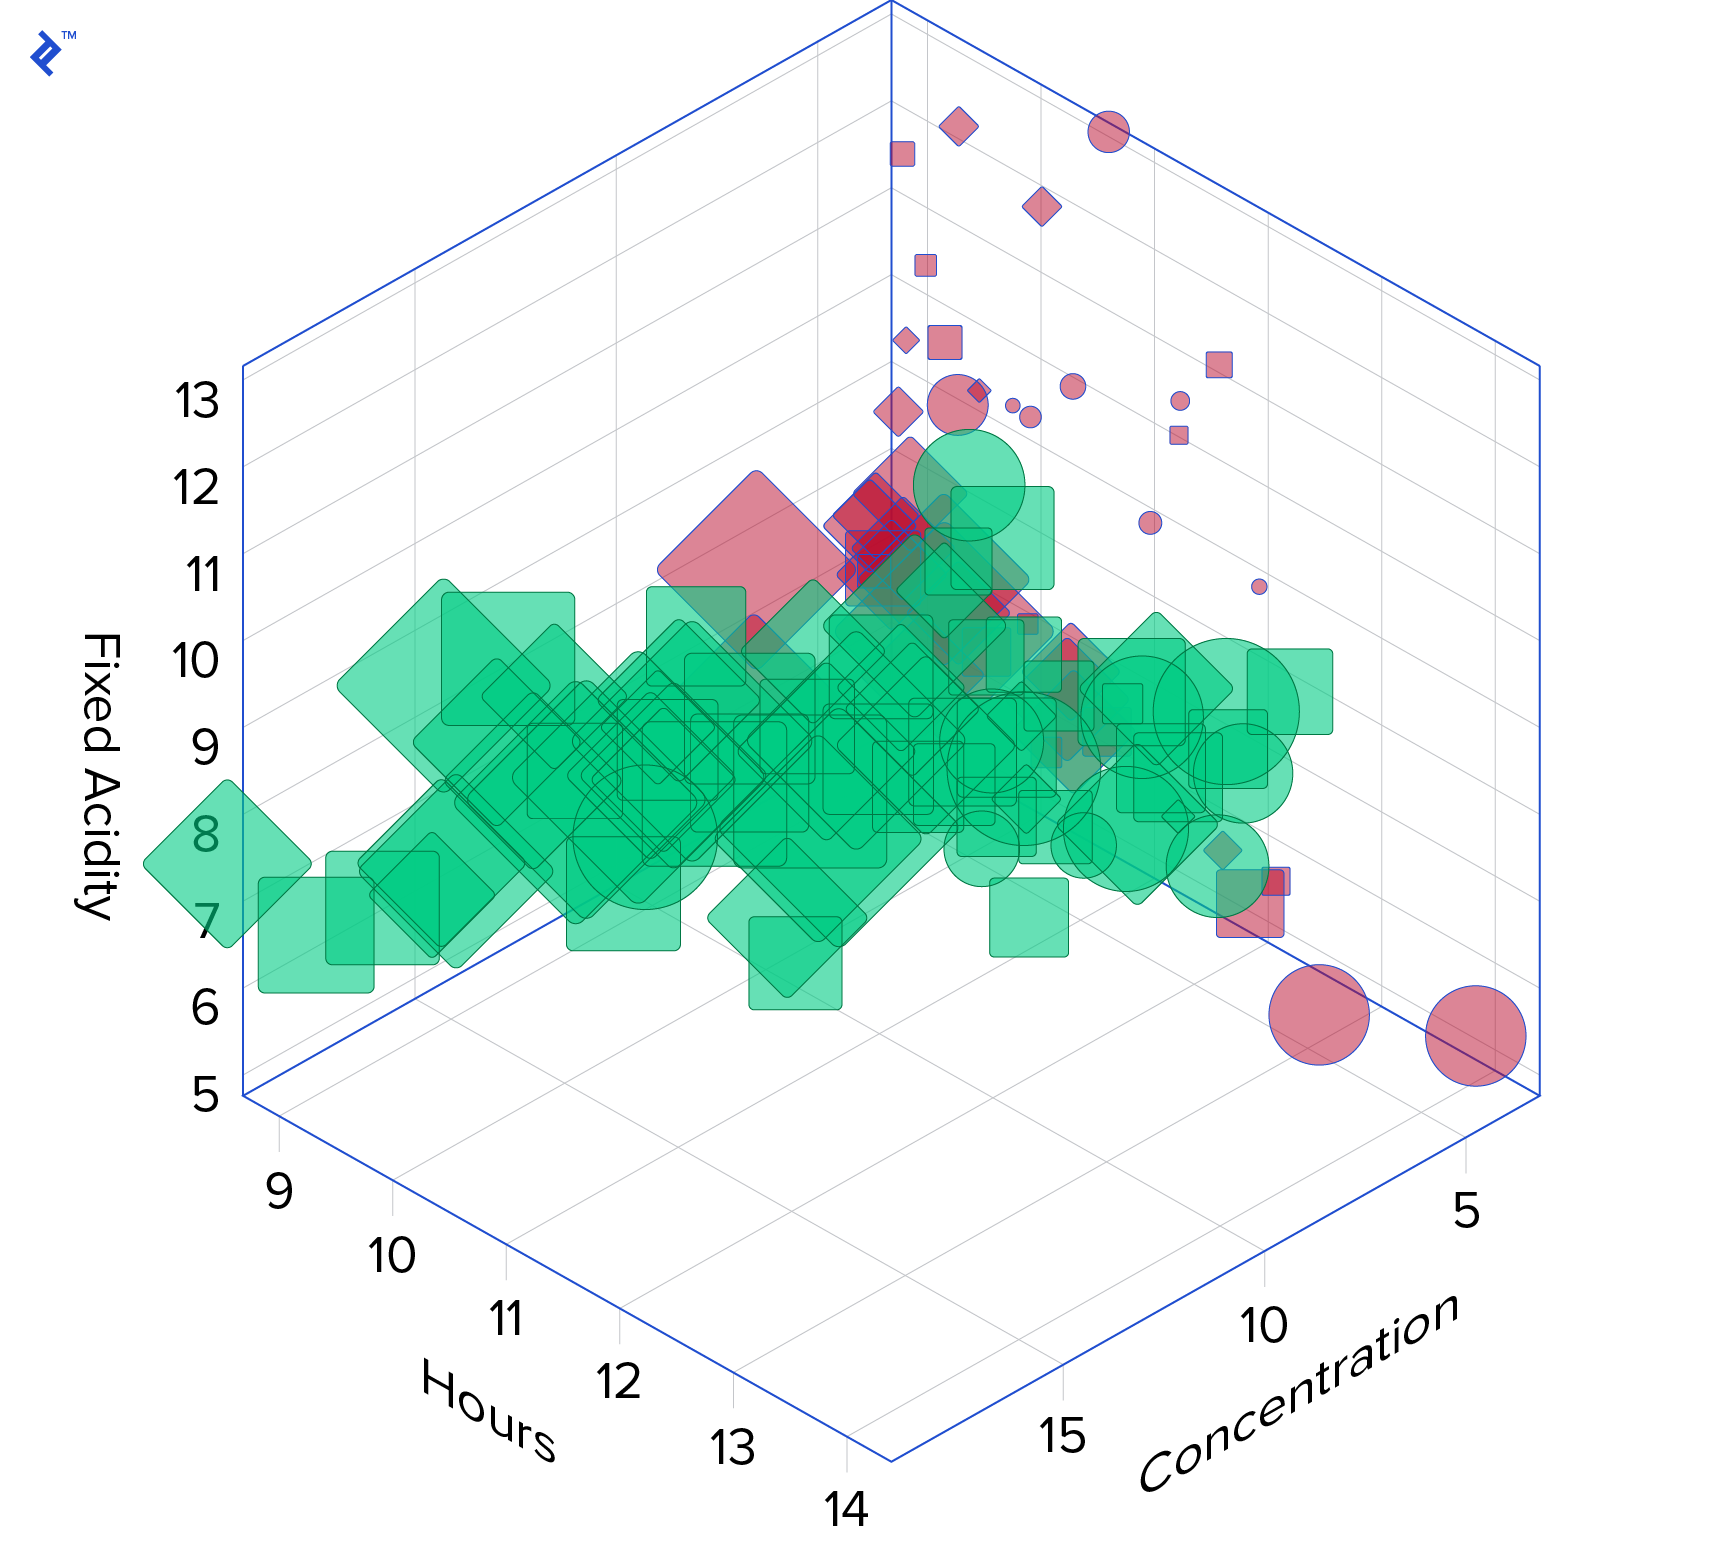 A six-dimensional chart, using color, size, and shape in addition to mapping Fixed Acidity, Hours, and Concentration on the traditional 3D axes.  Such a chart shows how to use extra dimensions, but it also shows that using them all in the same chart can result in data that's too visually busy to interpret correctly by viewers.